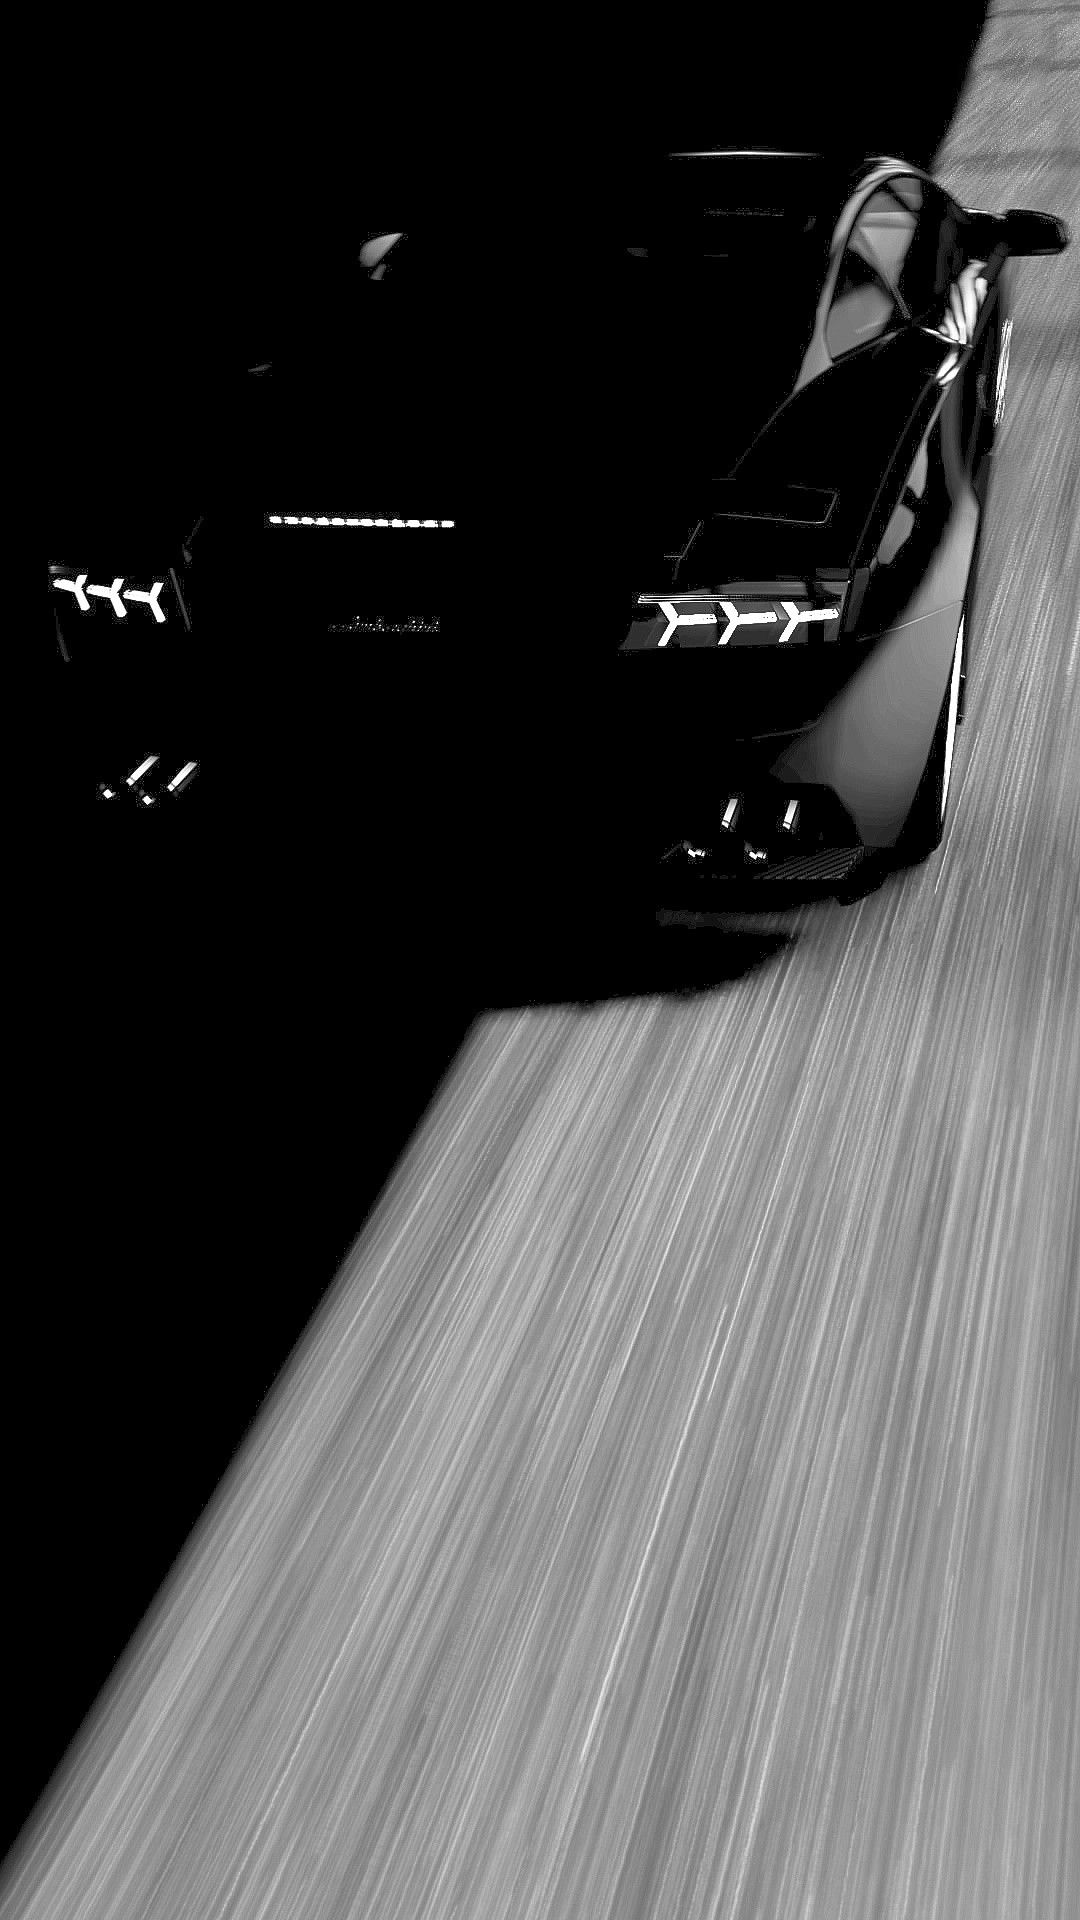 Bugatti bolide 2022 4 4k hd cars is part of the cars wallpapers collection. Iphone Black Car Wallpaper 4k For Mobile